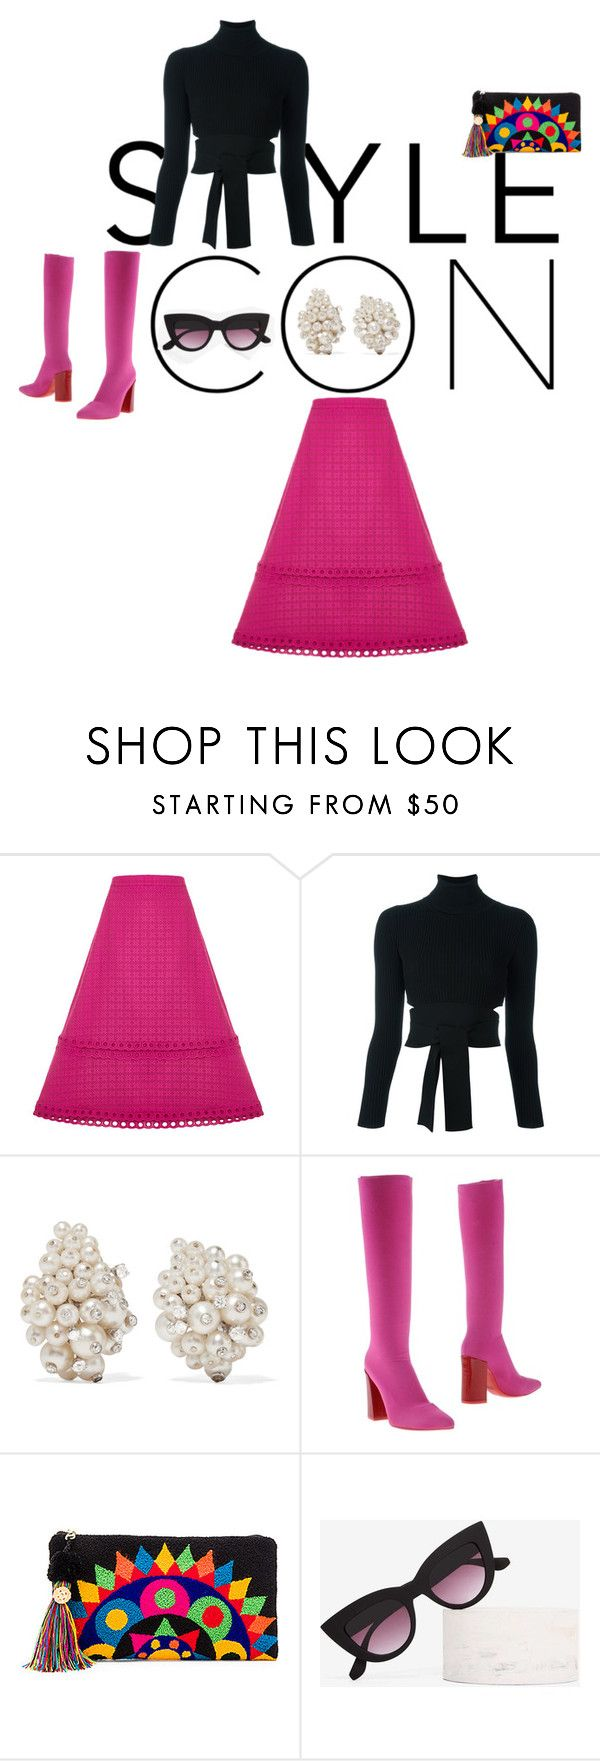 Ann by wildpatchouli on Polyvore featuring Cushnie Et Ochs, House of Holland, Luca Valentini, The Way U, Fred Leighton, Quay, Pink and pretty